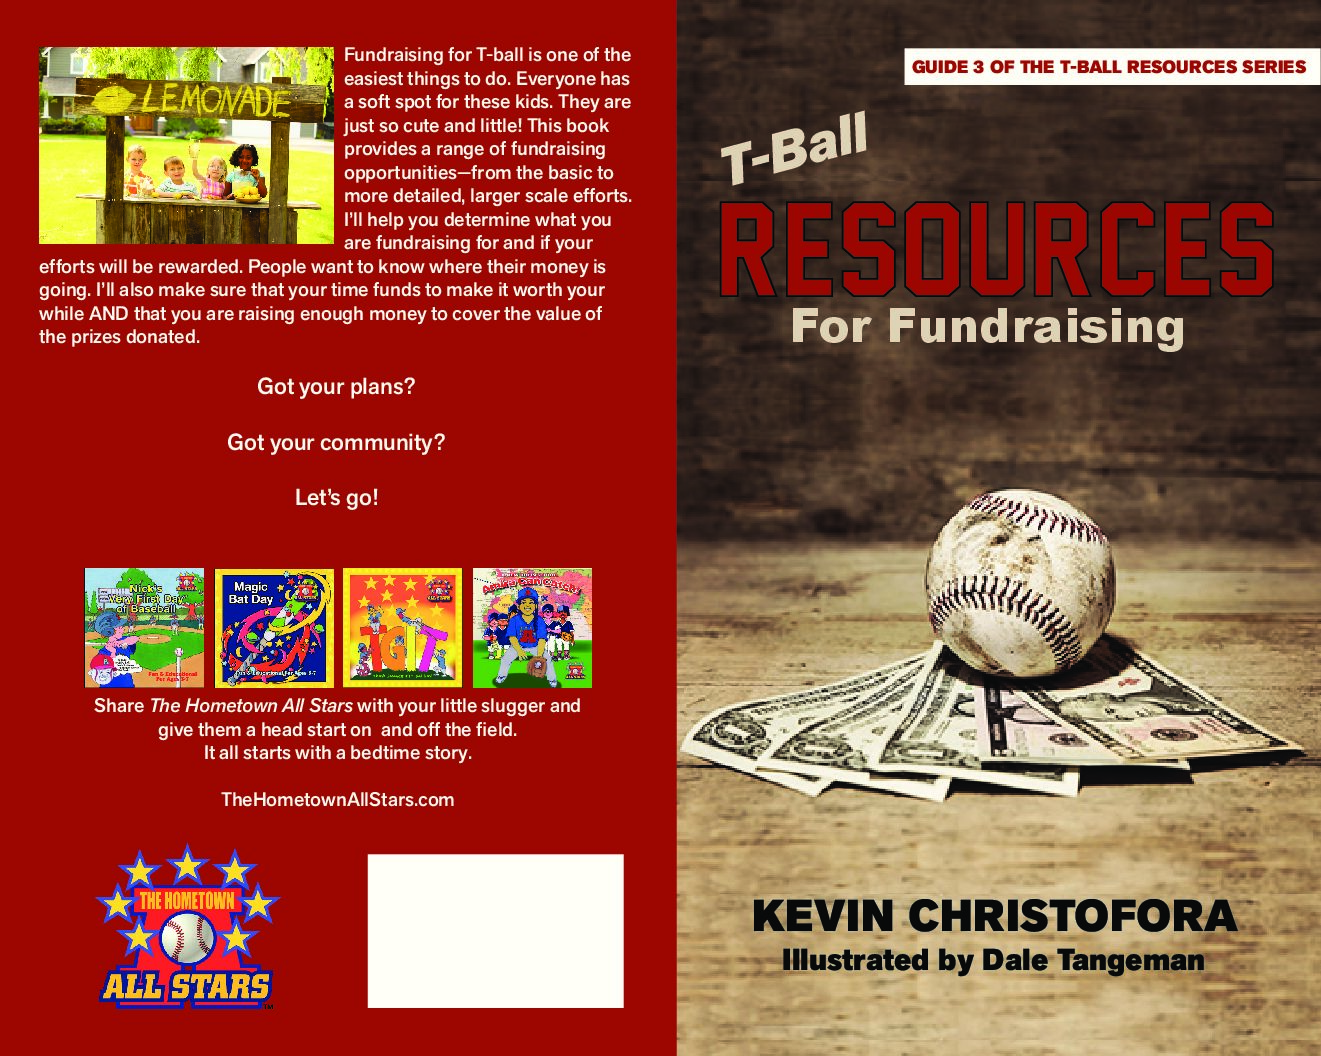 T-Ball Resources for Fundraising